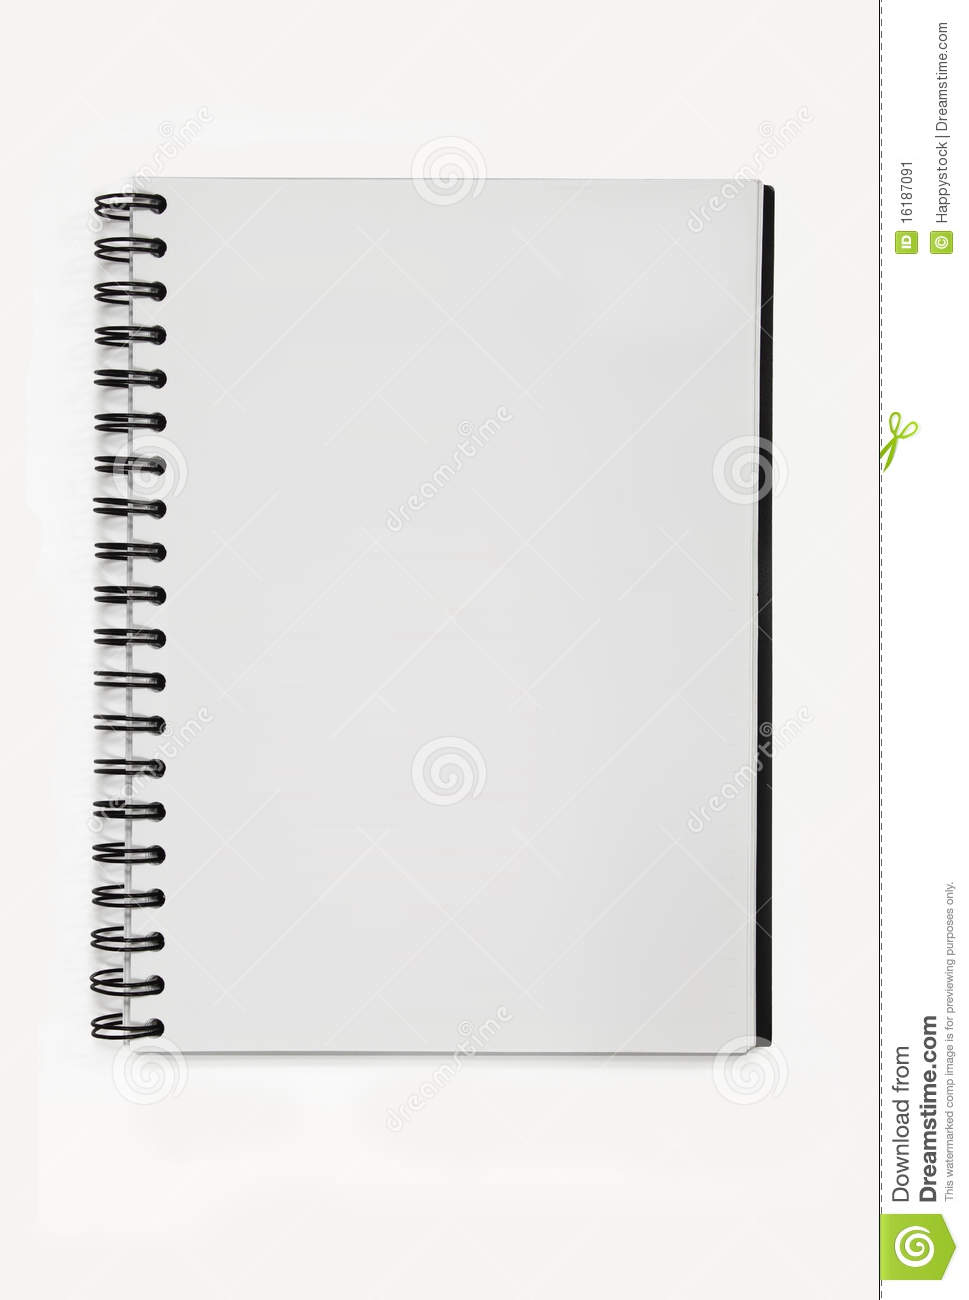 spiral notebook paper without line stock image - image of clean